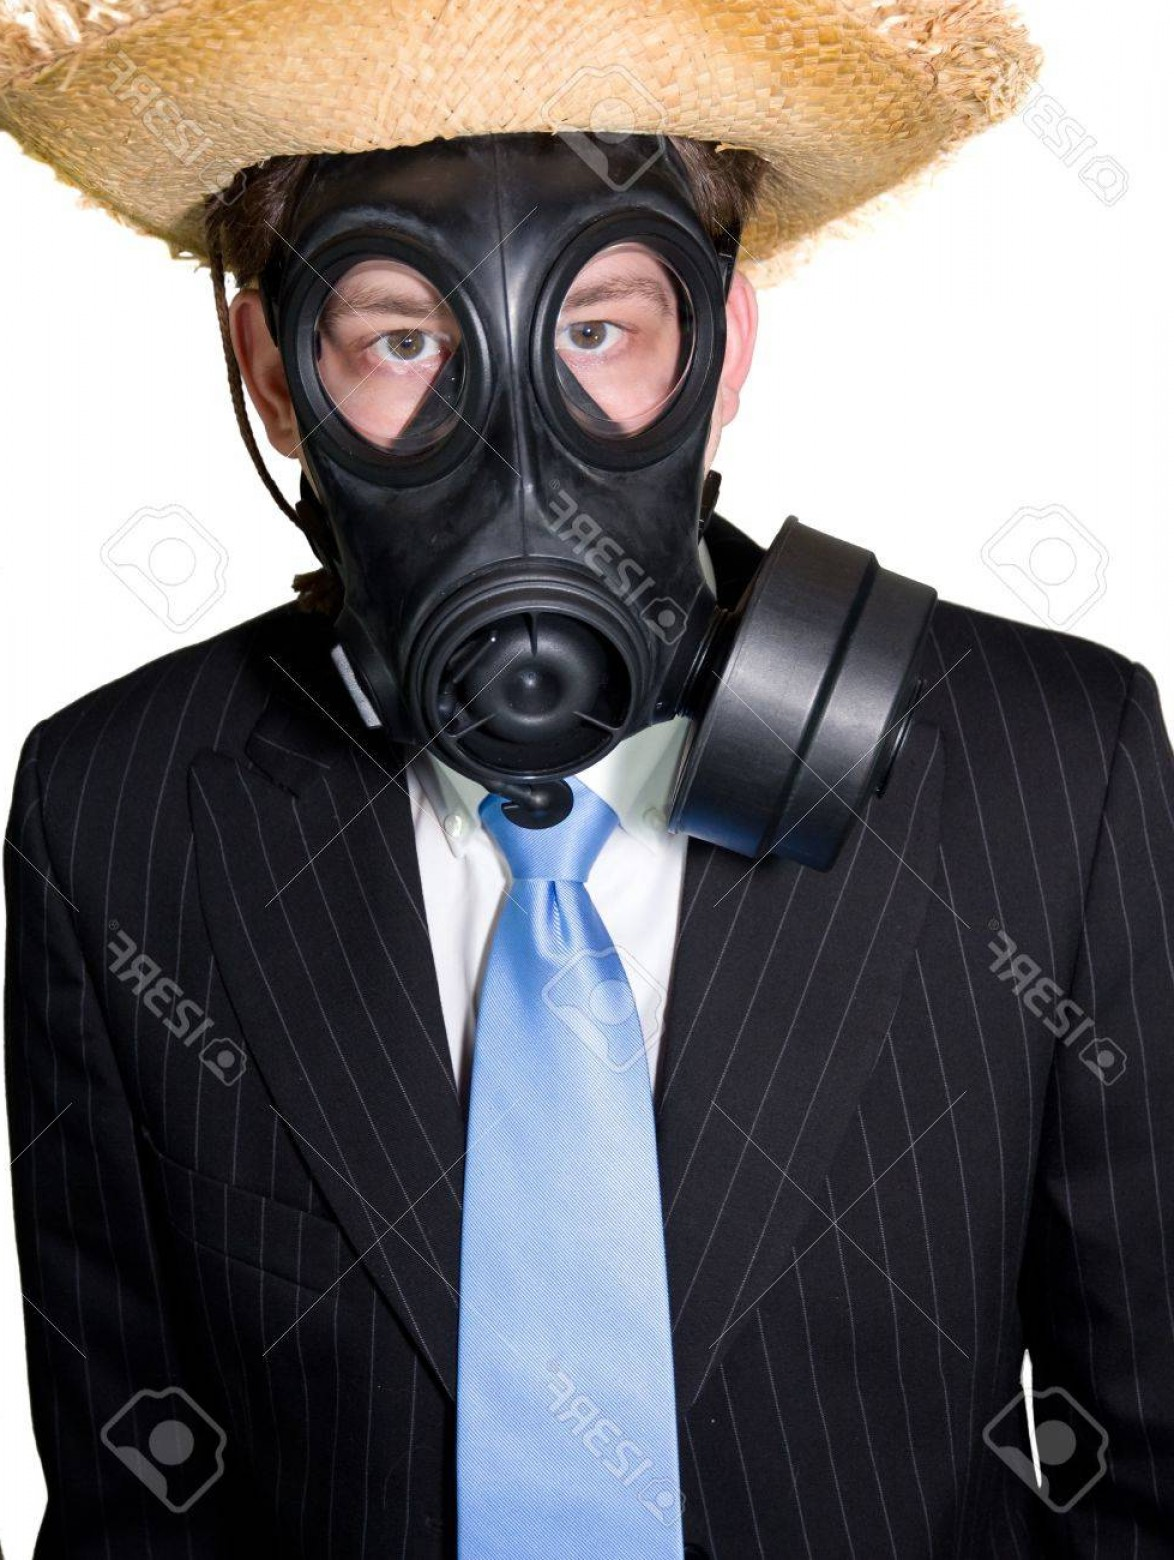 Gas Mask Suit And Tie Vector: Photopicture Of A Man In Suit With A Gasmask And A Hat